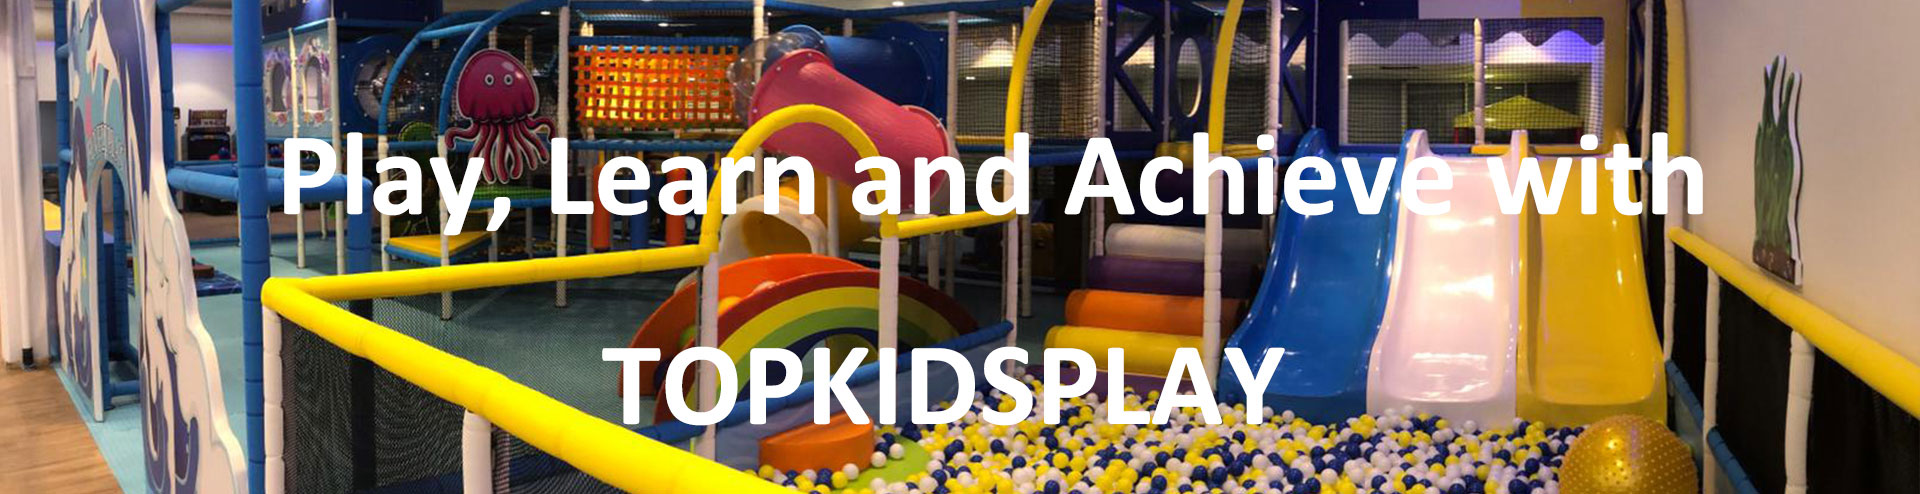 Play,learn and Achineve with TOPKIDSPLAY